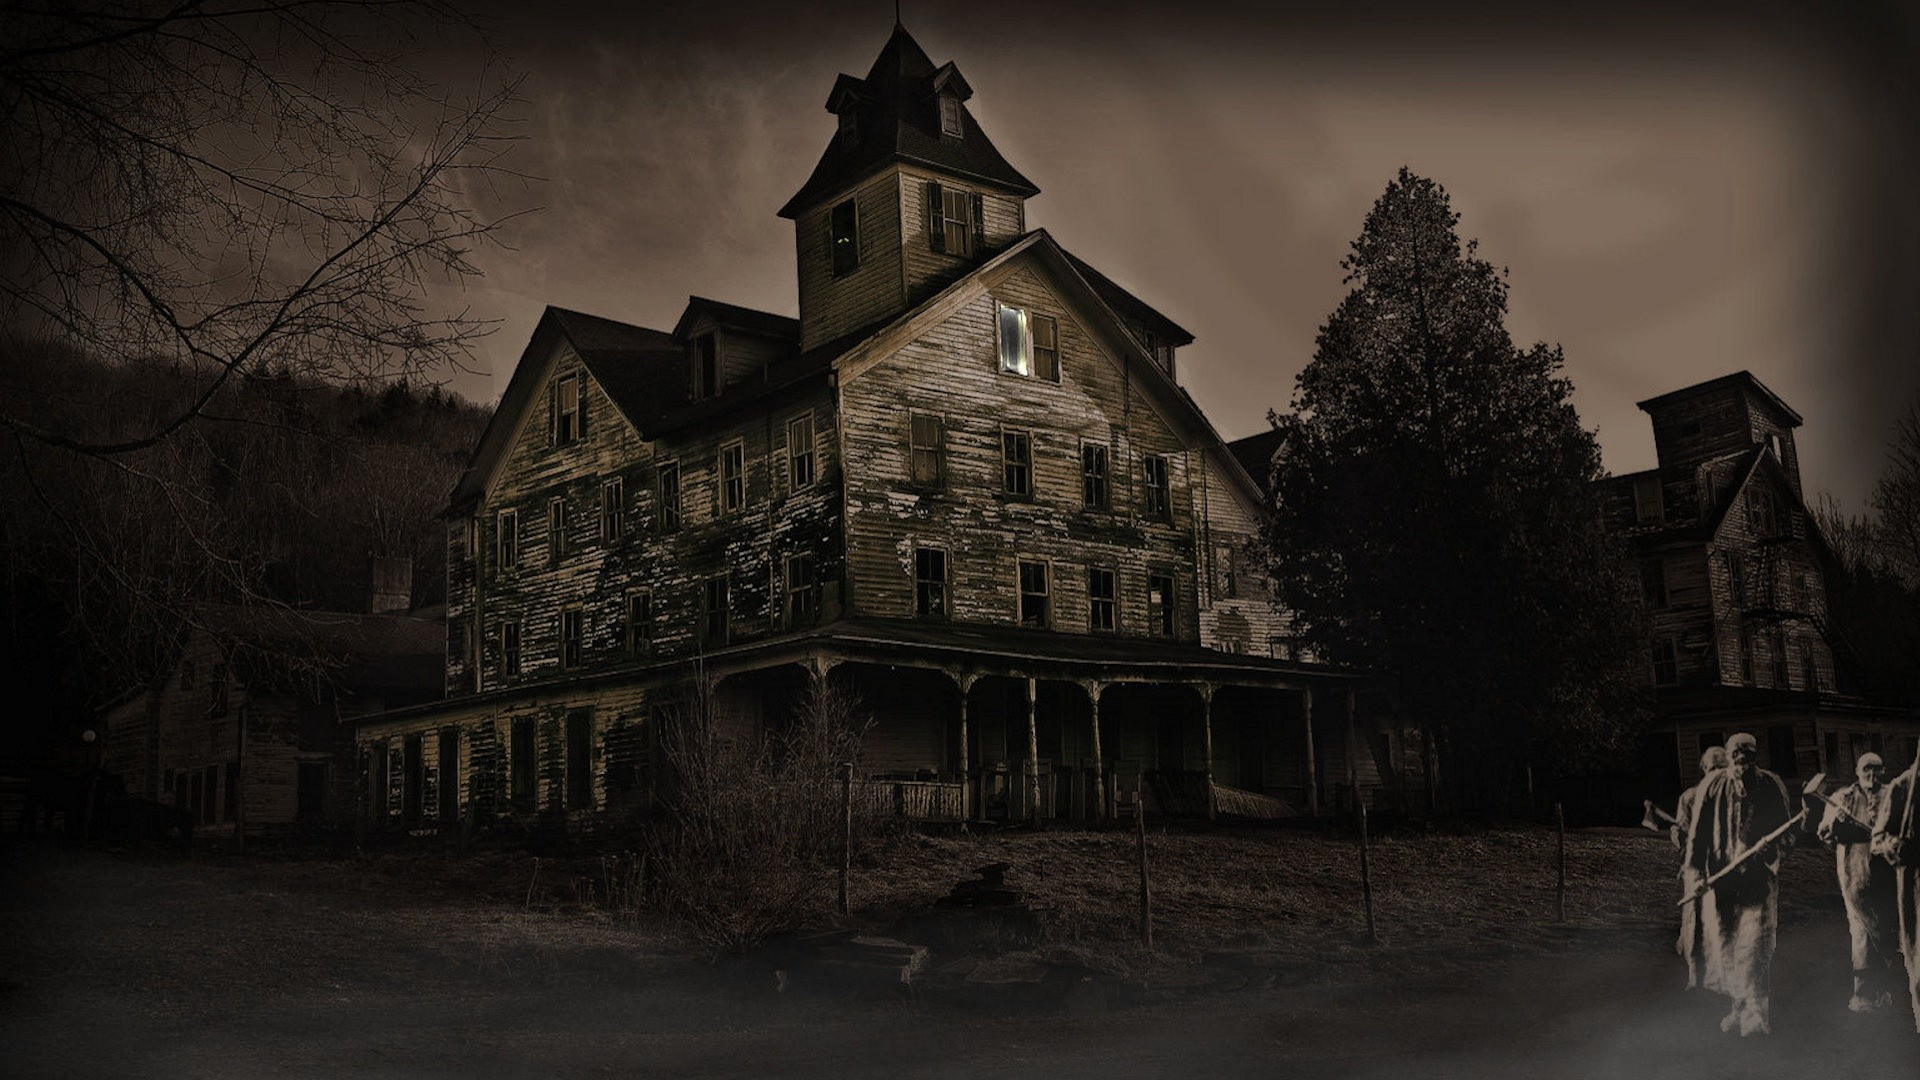 1920x1080 halloween haunted house wallpaper Haunted House wallpaper - 793459